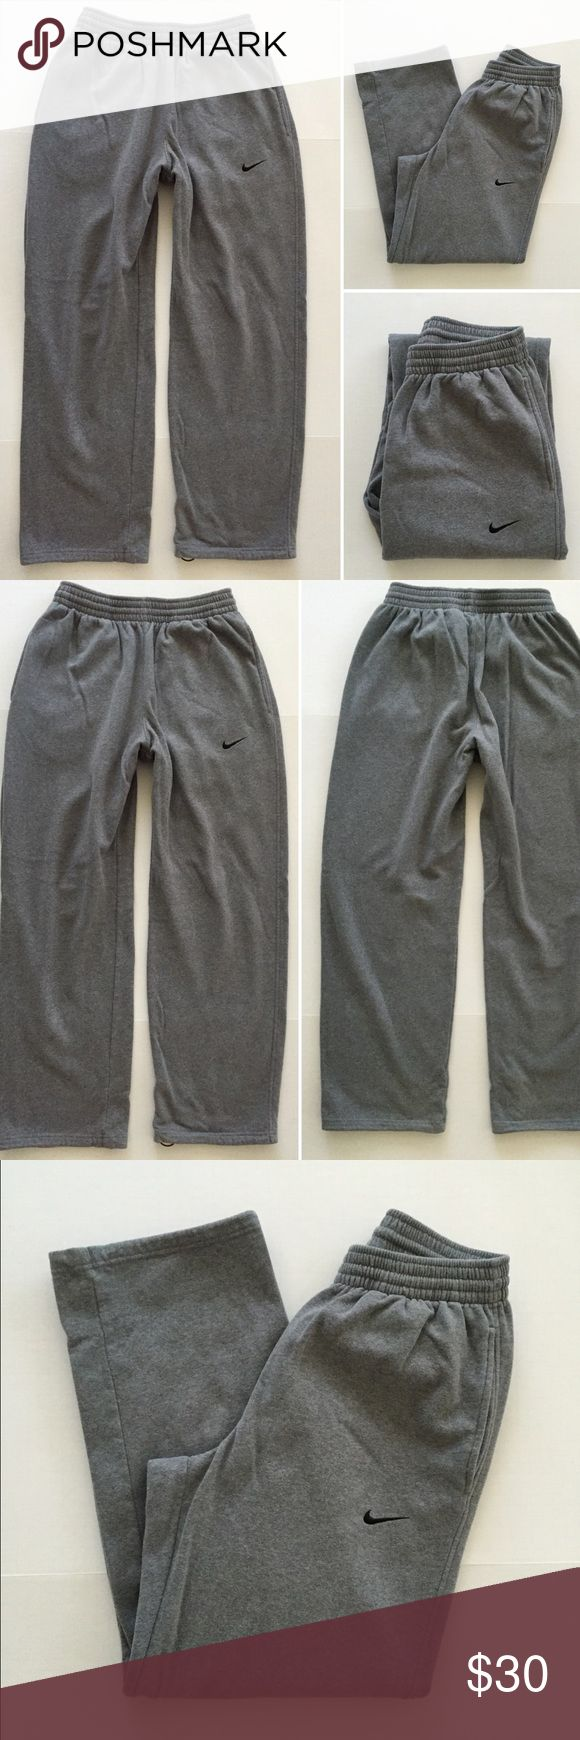 "[Nike] men's athletic gray jogger sweatpants L [Nike] men's athletic gray jogger sweatpants L •🆕listing •good pre-owned condition •grey with black embroidered insignia •length/inseam 31.5"" •2 front pockets, pant leg bottoms adjustable cinching closure •material 80% cotton 20% polyester, very soft fleece sweats •Very subtle wear to bottoms of pant legs on interior •Offers welcomed using the offer feature or bundle for the best discount••• Nike Pants Sweatpants & Joggers"